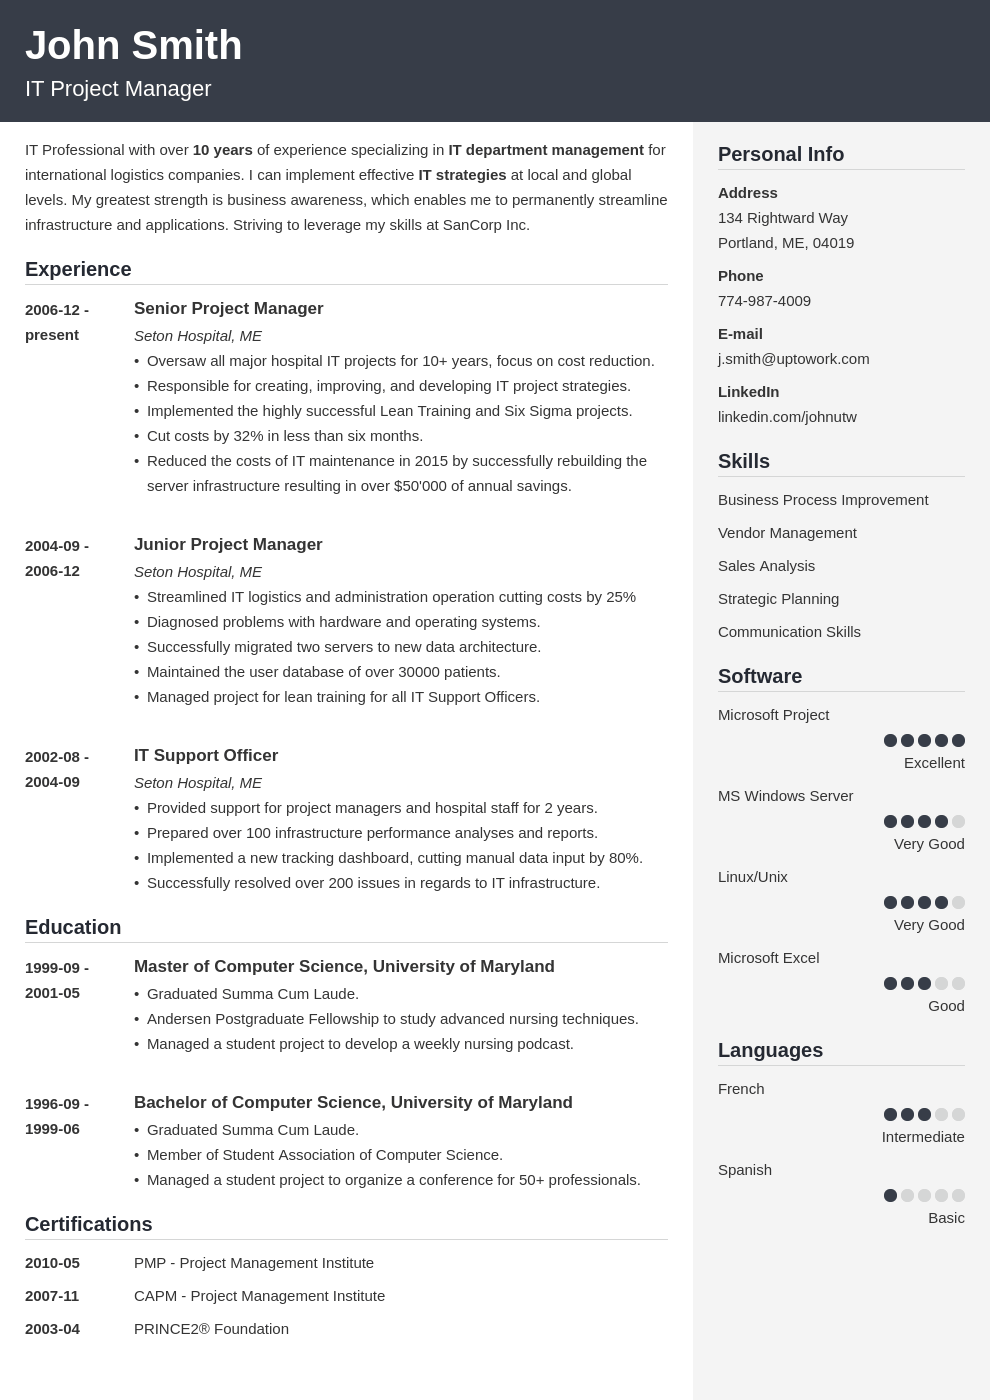 Professional CV Template Cubic